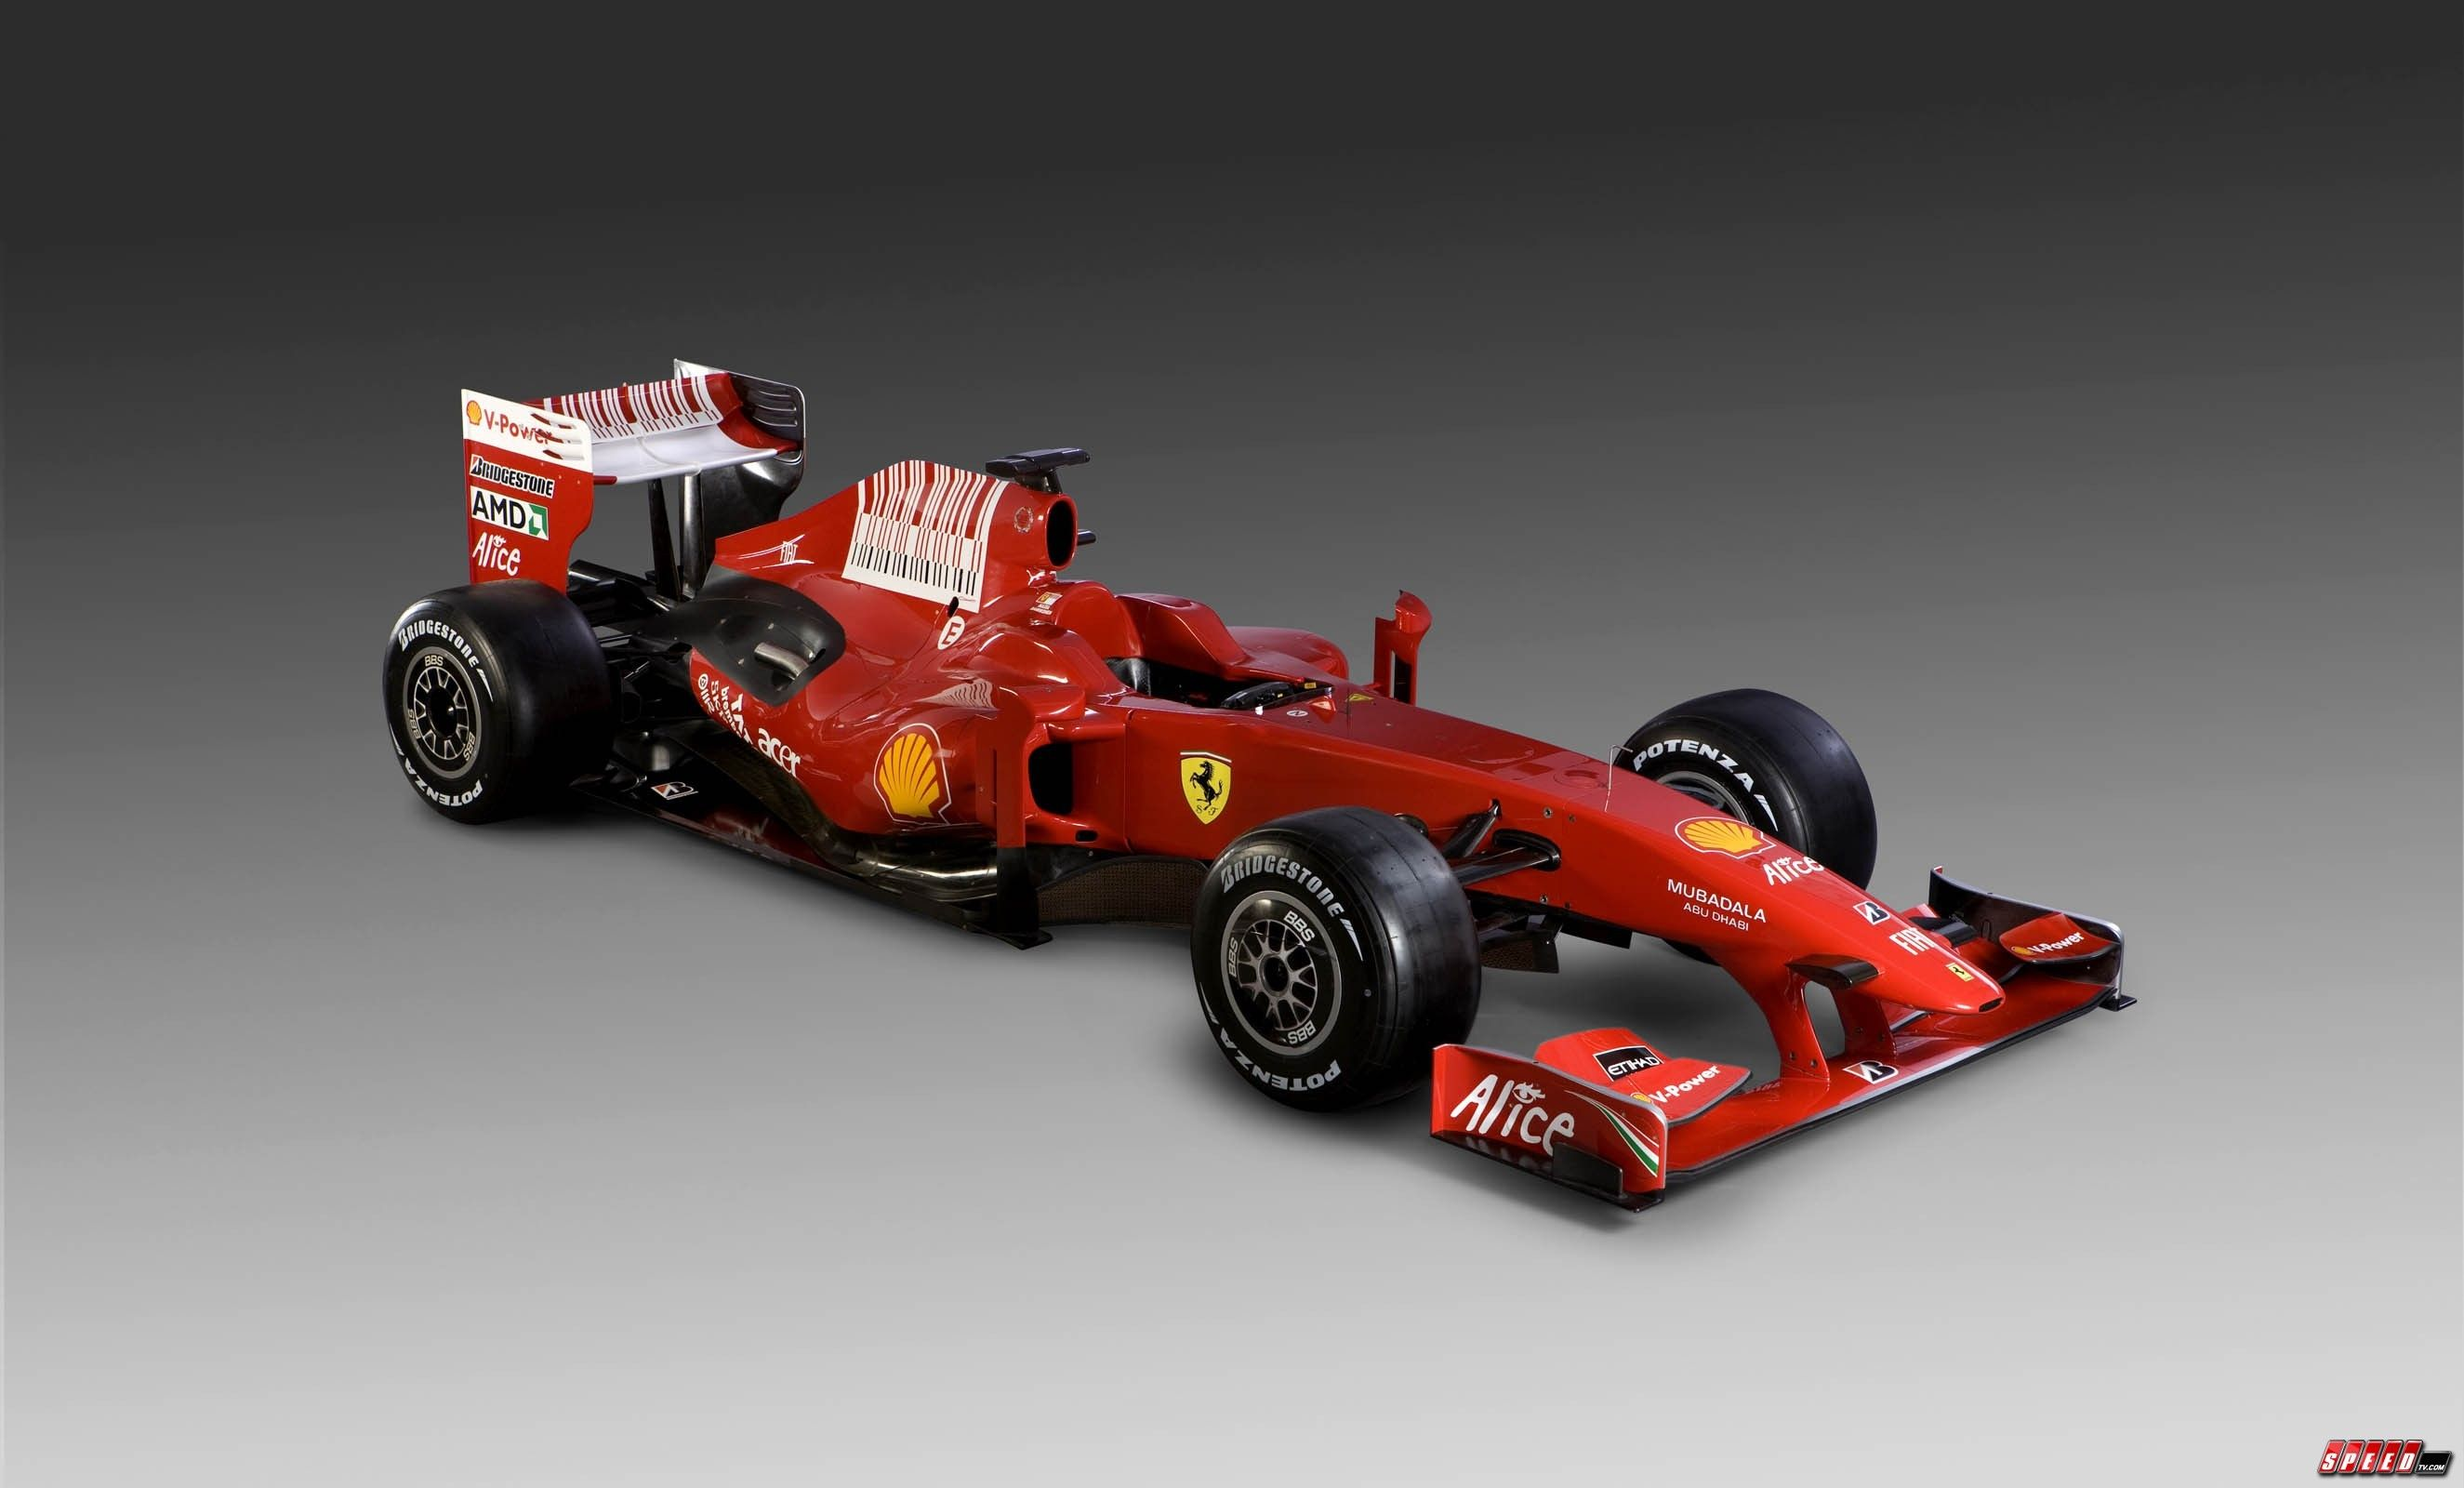 More Ferrari Love Motos Formula 1 Carros